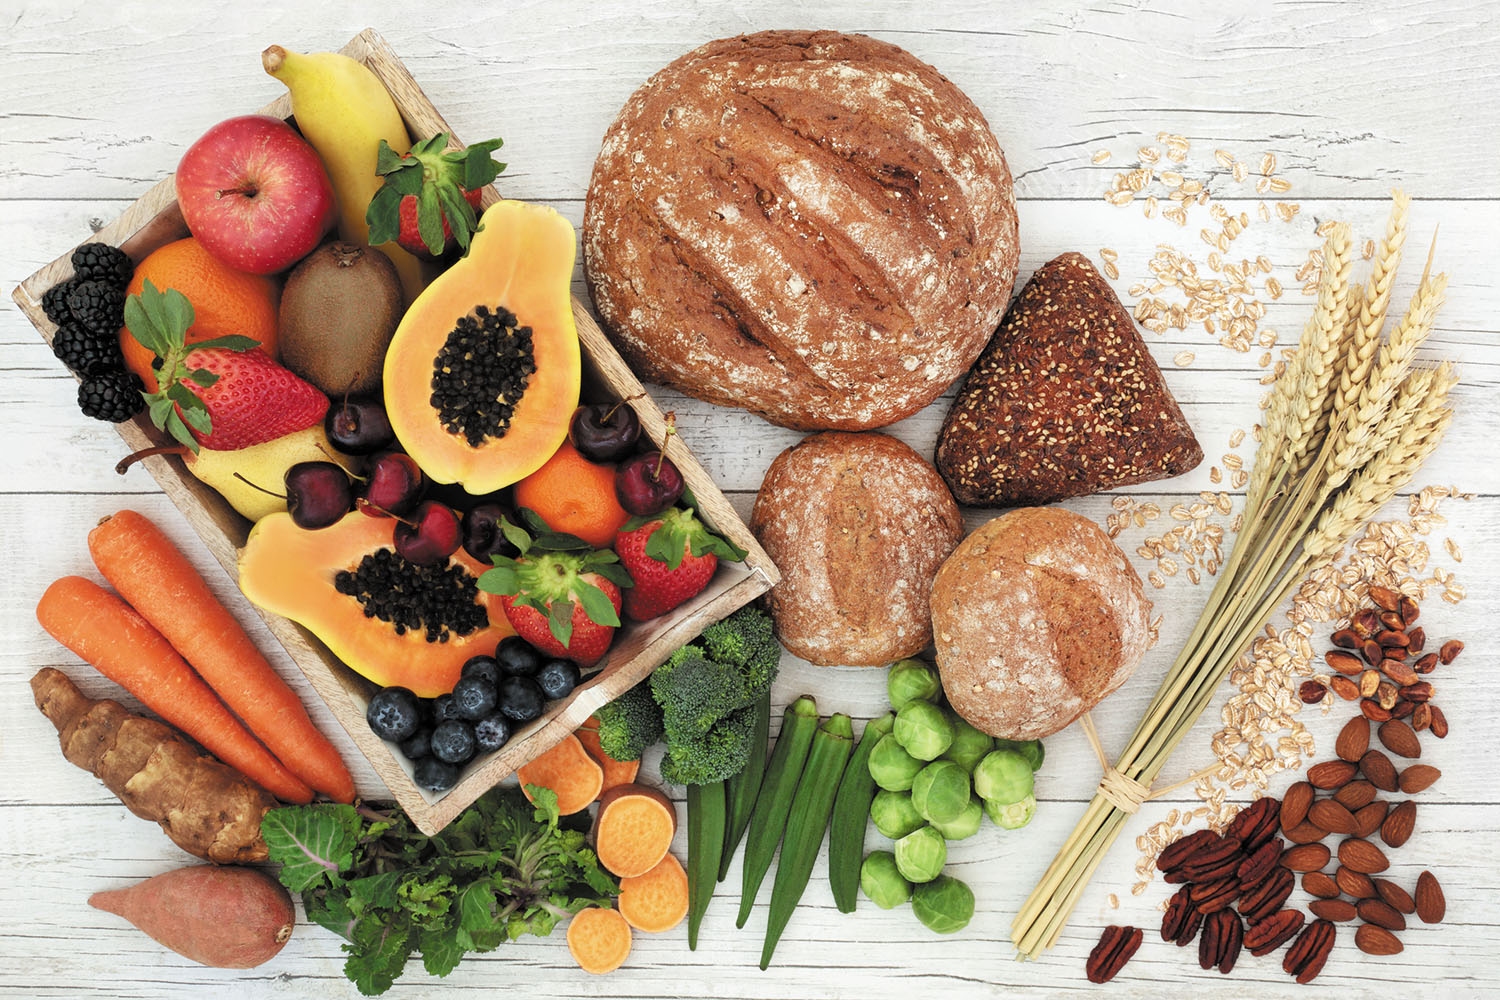 Fiber: The carb you can count on for heart health - Harvard Health